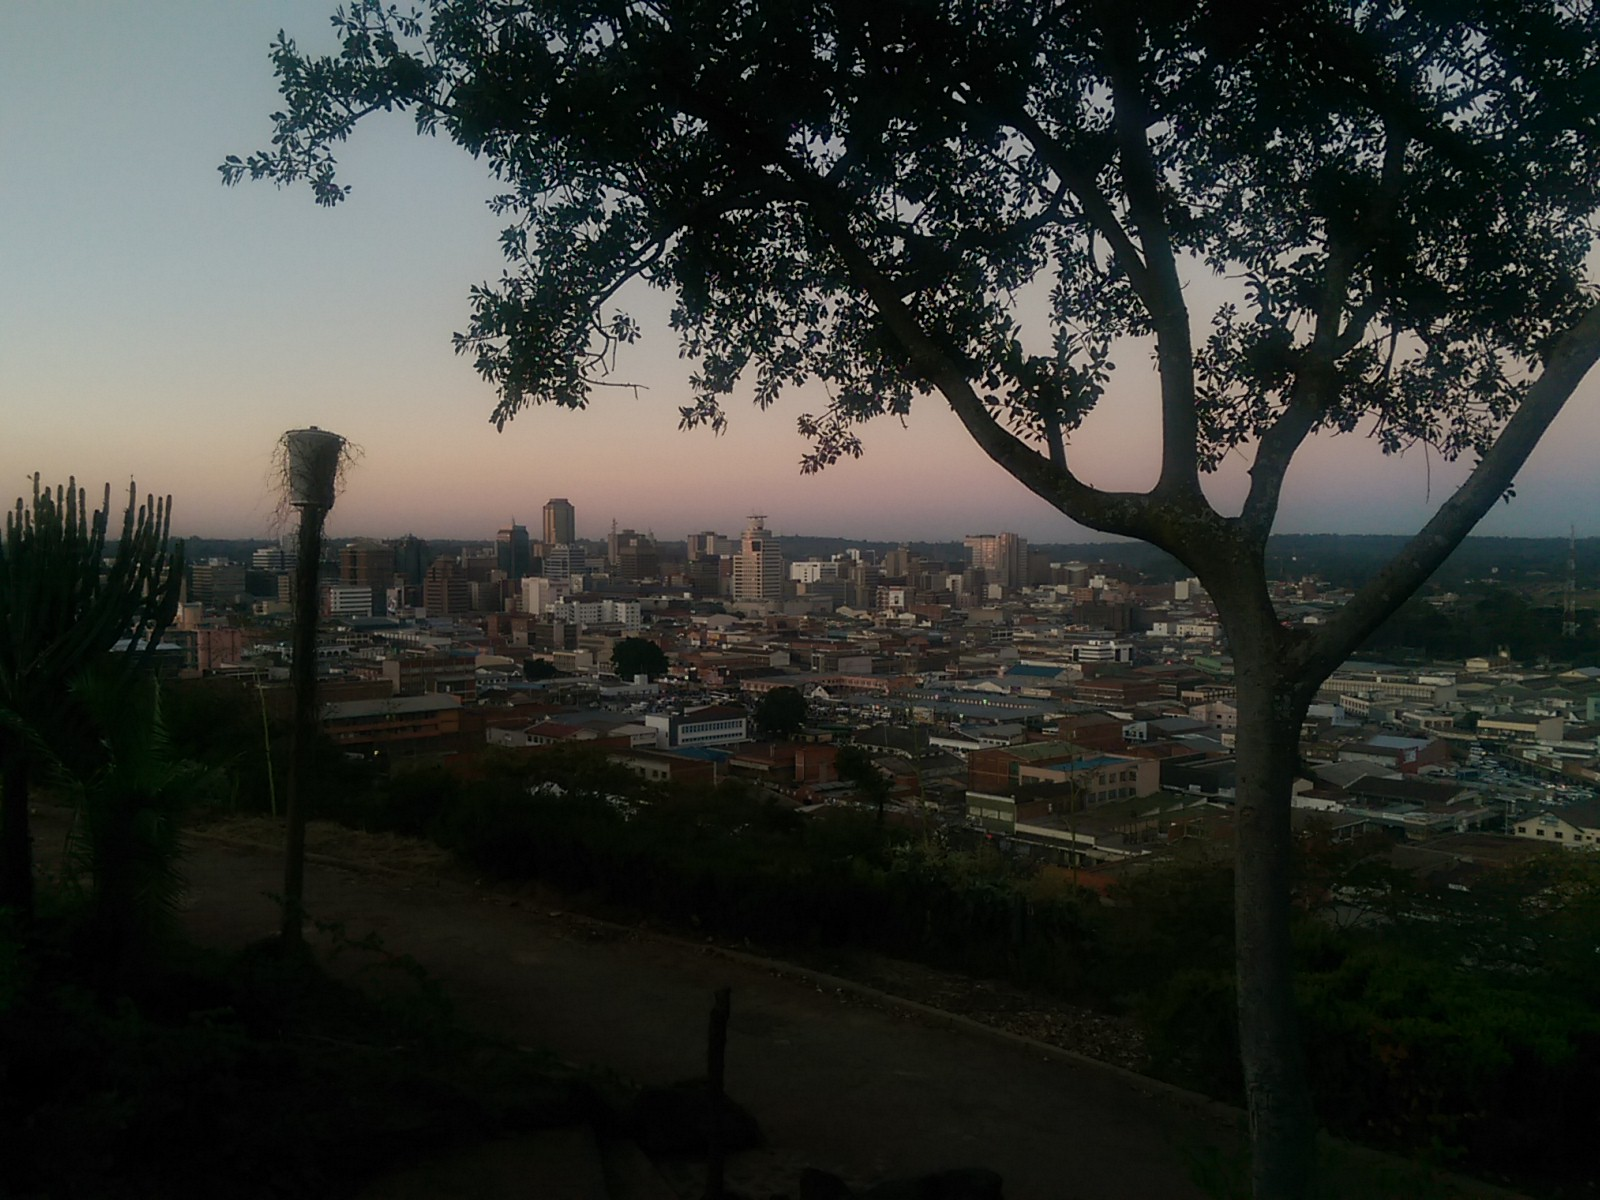 A tree in the foreground of a city scape with a gentle pink and blue dusk sky